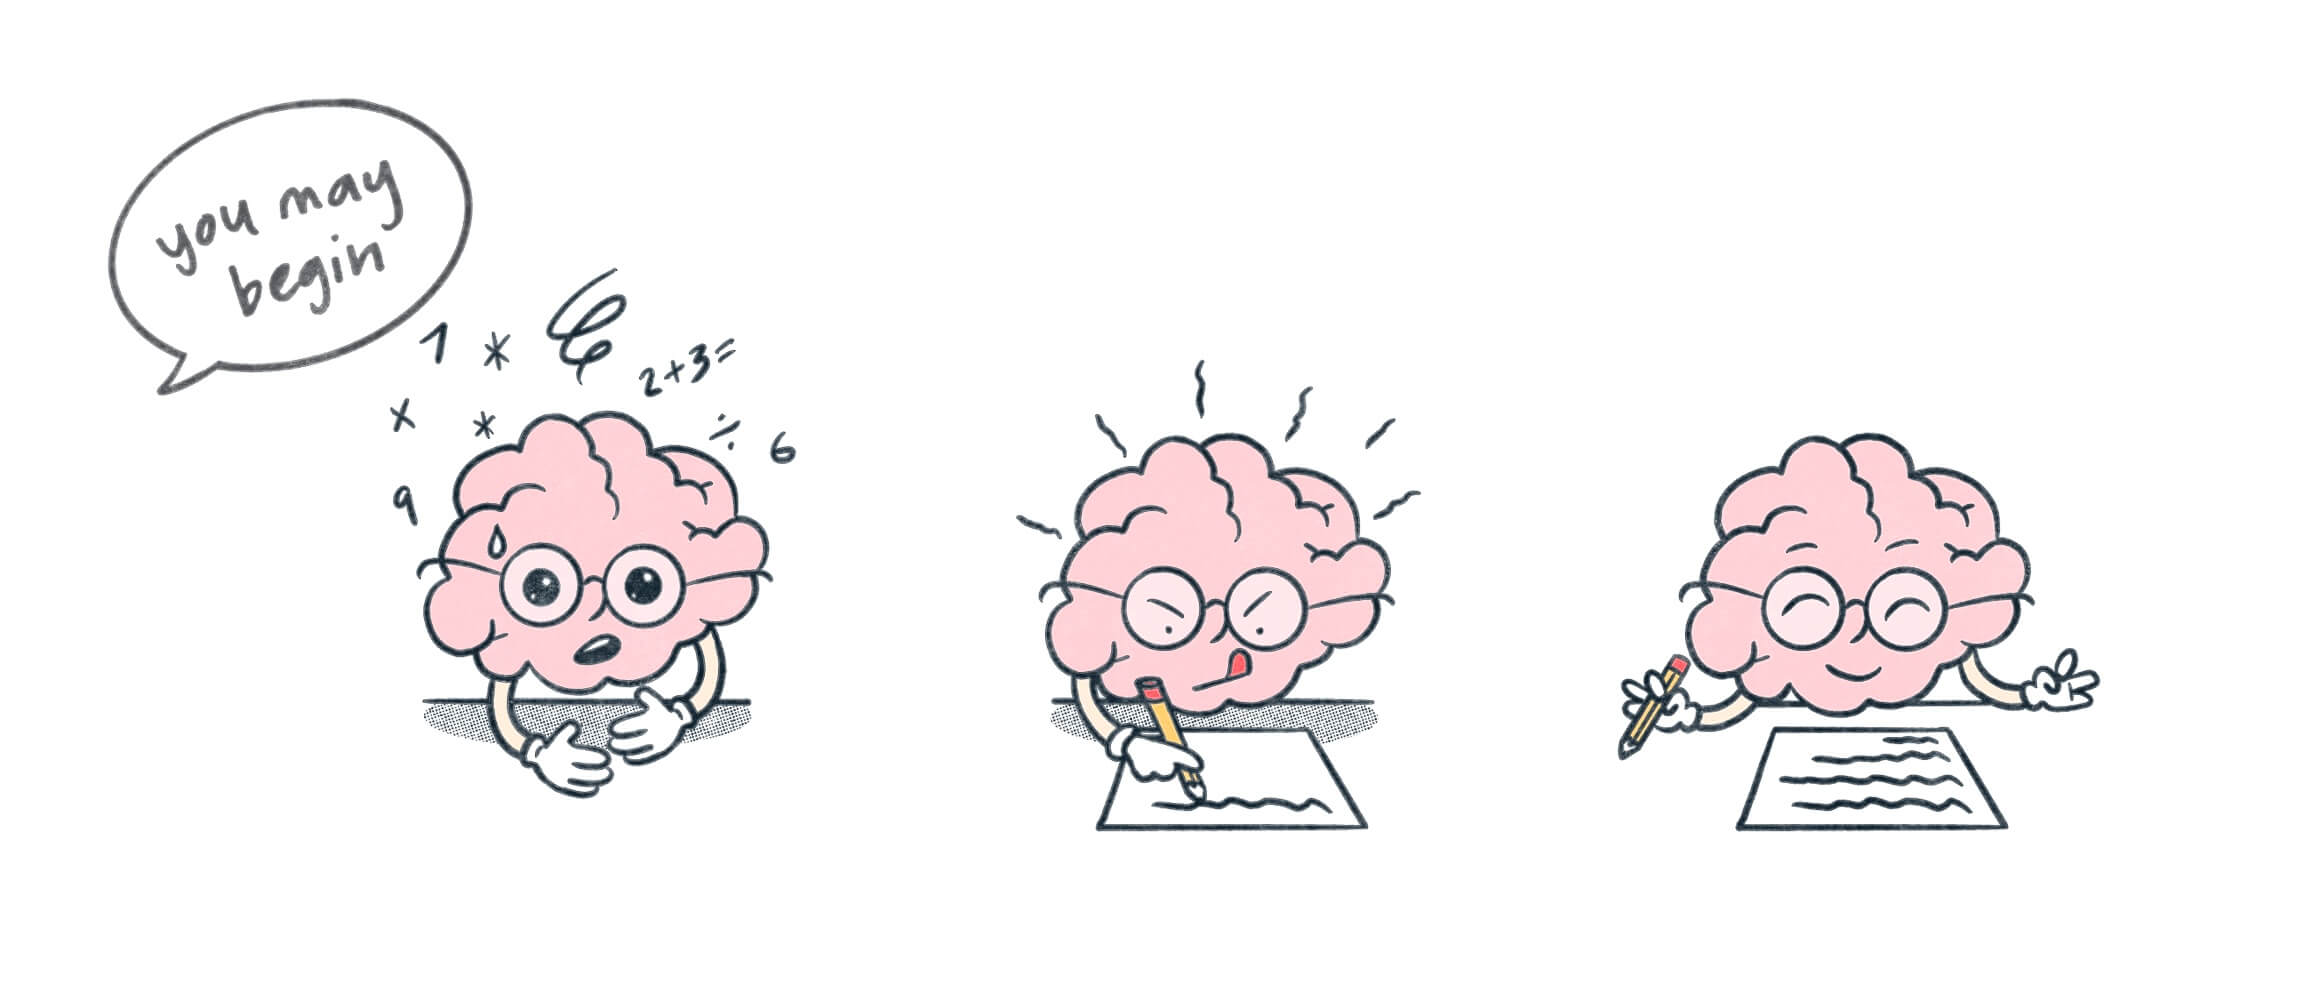 Personified brain in 3 stages. 1. Anxiously awaiting start of exam. 2. Writing down hard to remember things. 3. Taking the exam with more peace of mind.